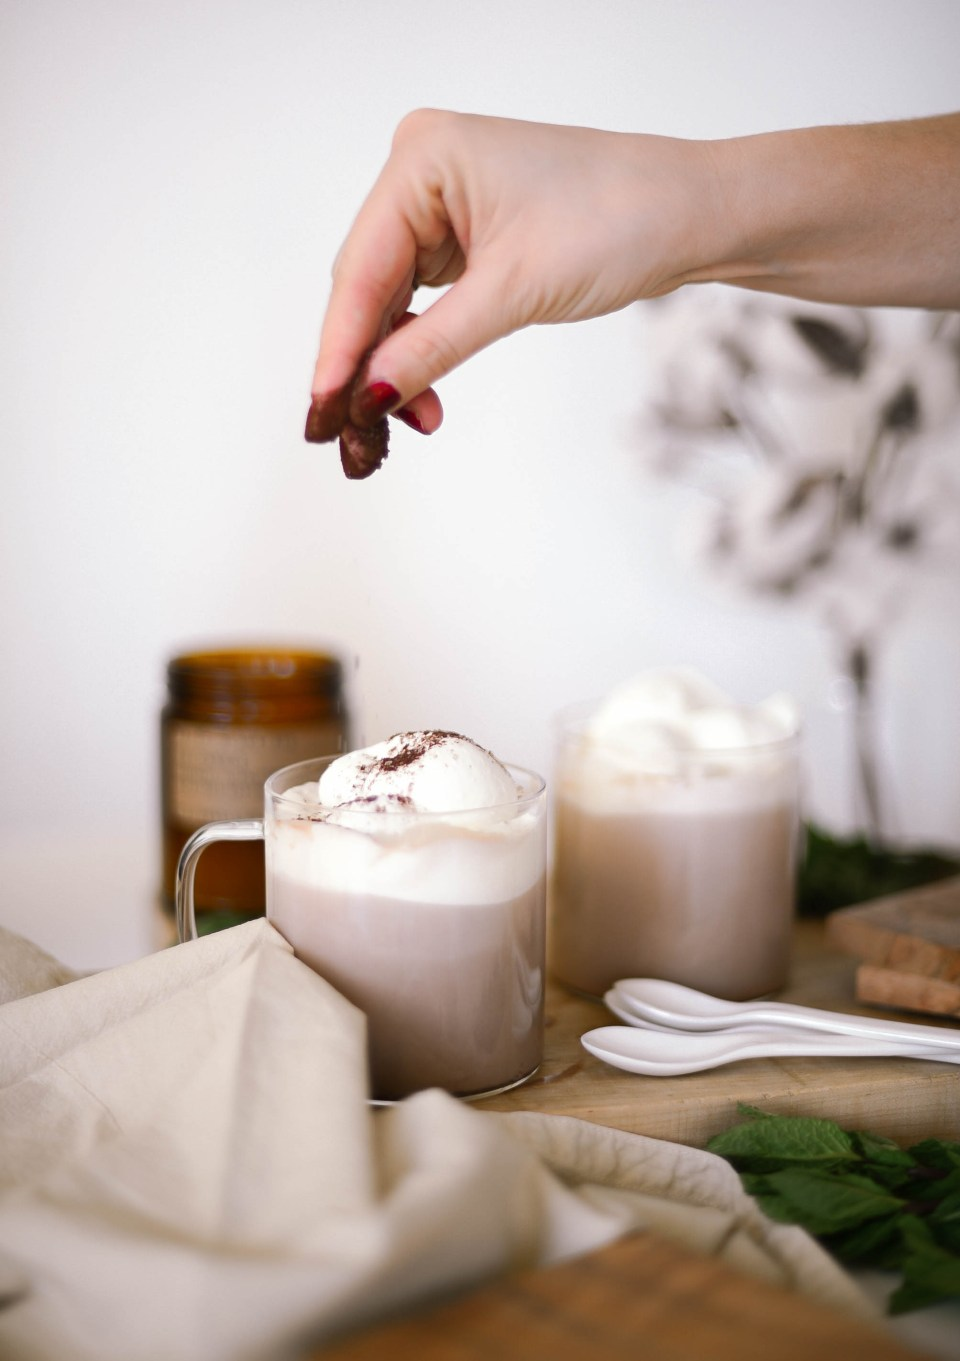 Christmas Cocktails using Kahlua and Baileys - the Peppermint Mocha